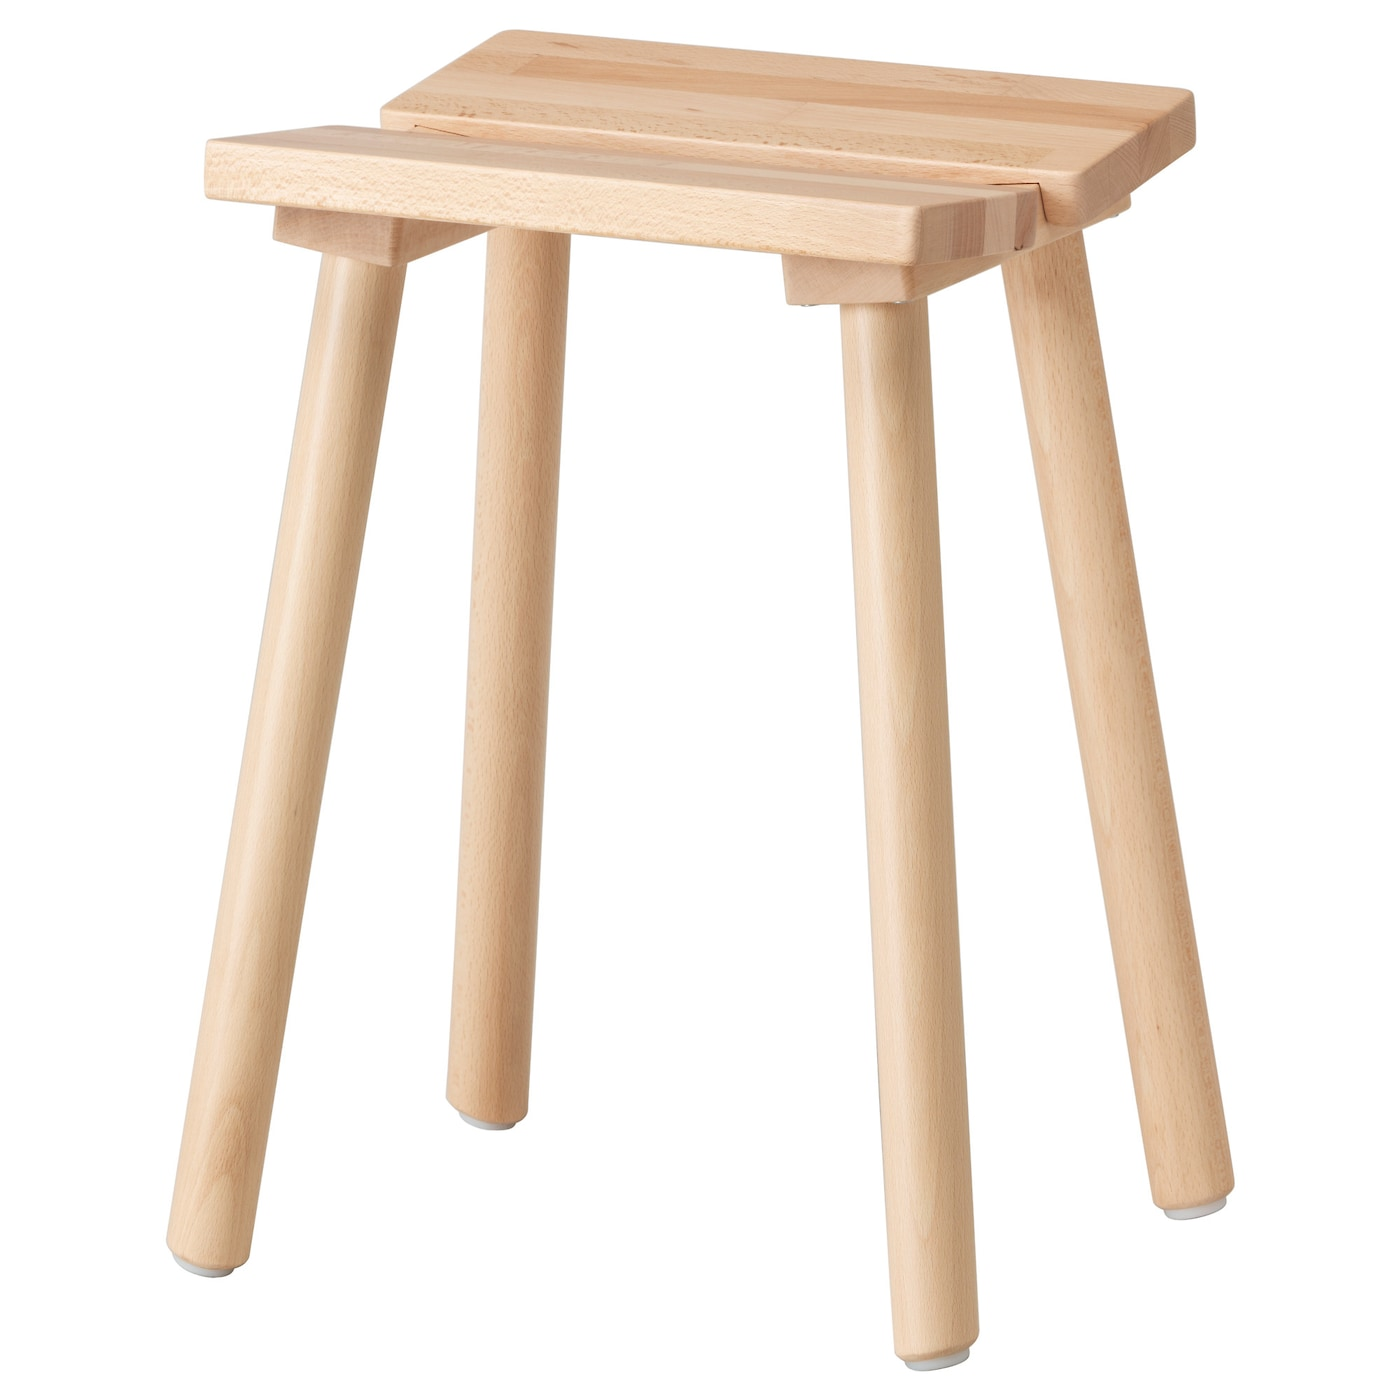 Ikea Ypperlig Stool Solid Beech Is A Hardwearing Natural Material